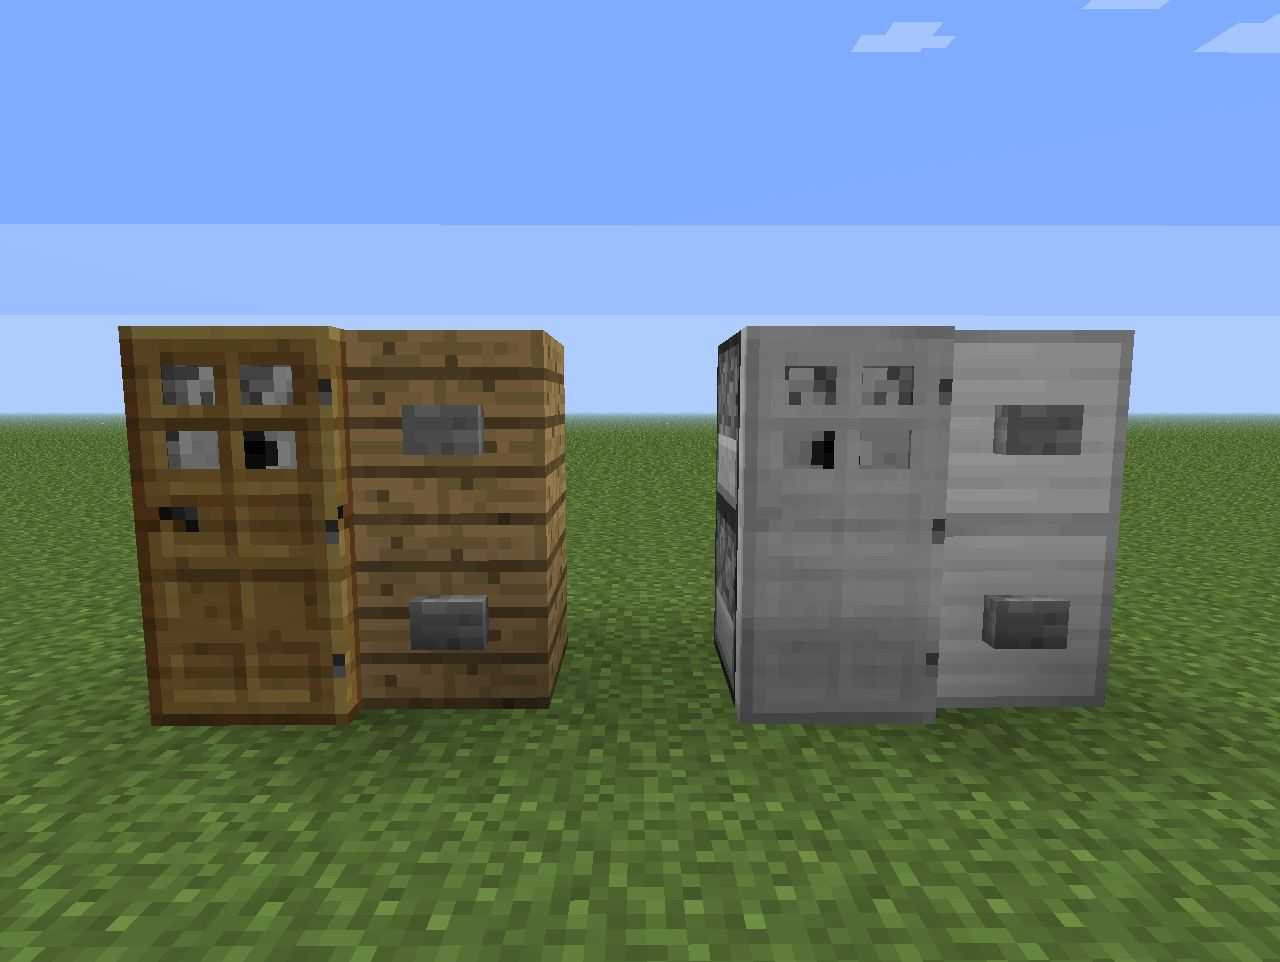 How to Make a Fridge in Minecraft! - YouTube